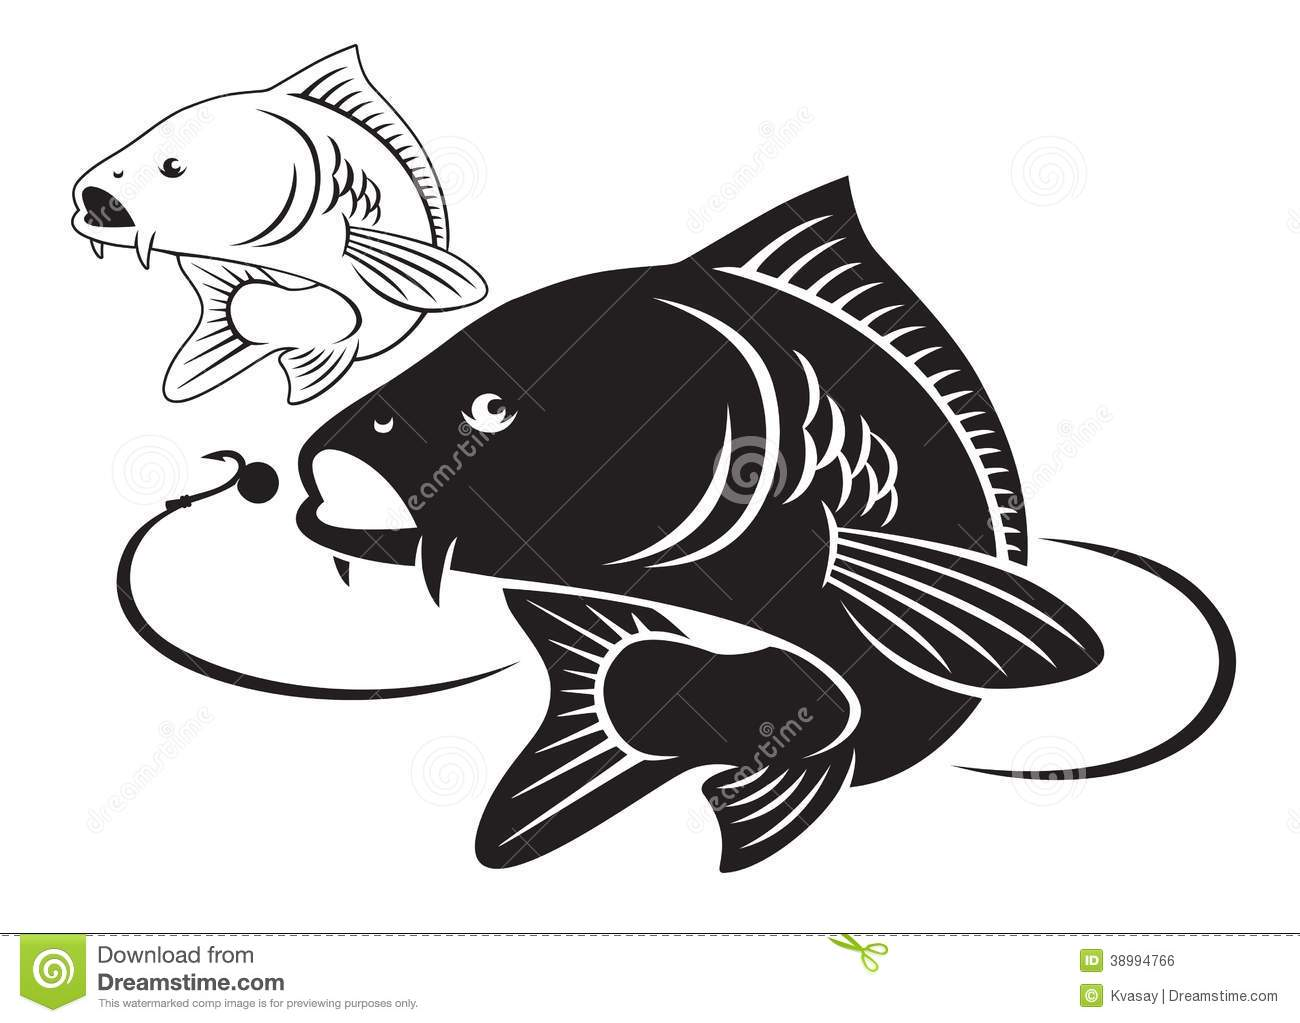 Carp fish stock vector. Illustration of carp, sports ...